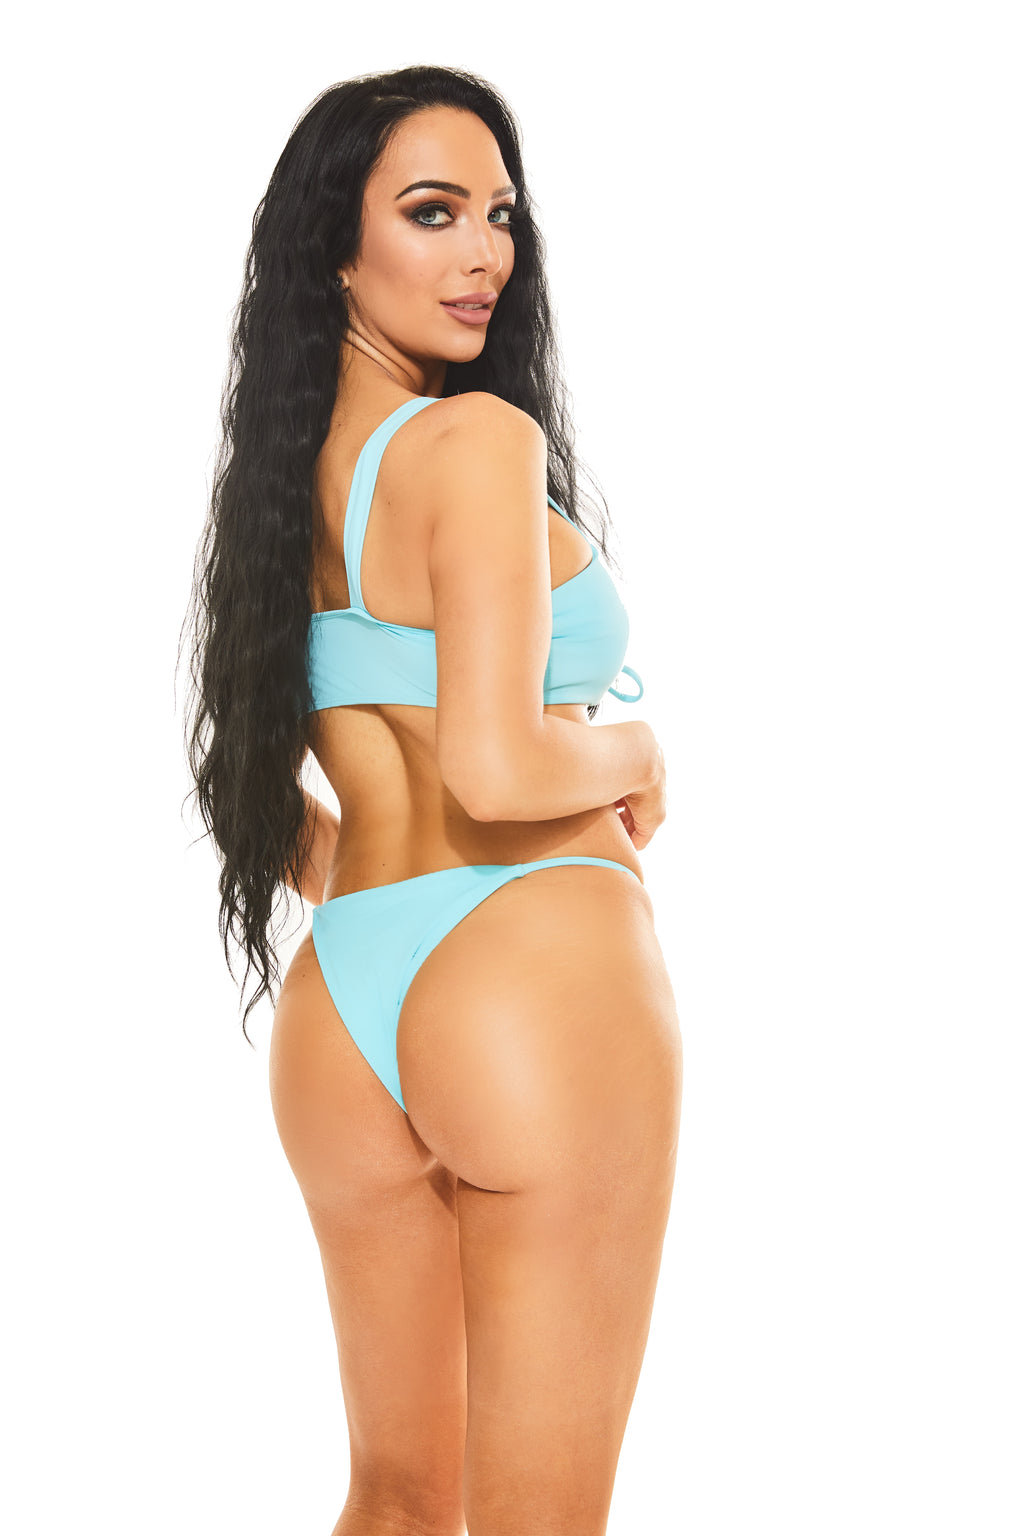 PRINCESS JASMINE LACE-UP Bikini - www.prettyboutique.com